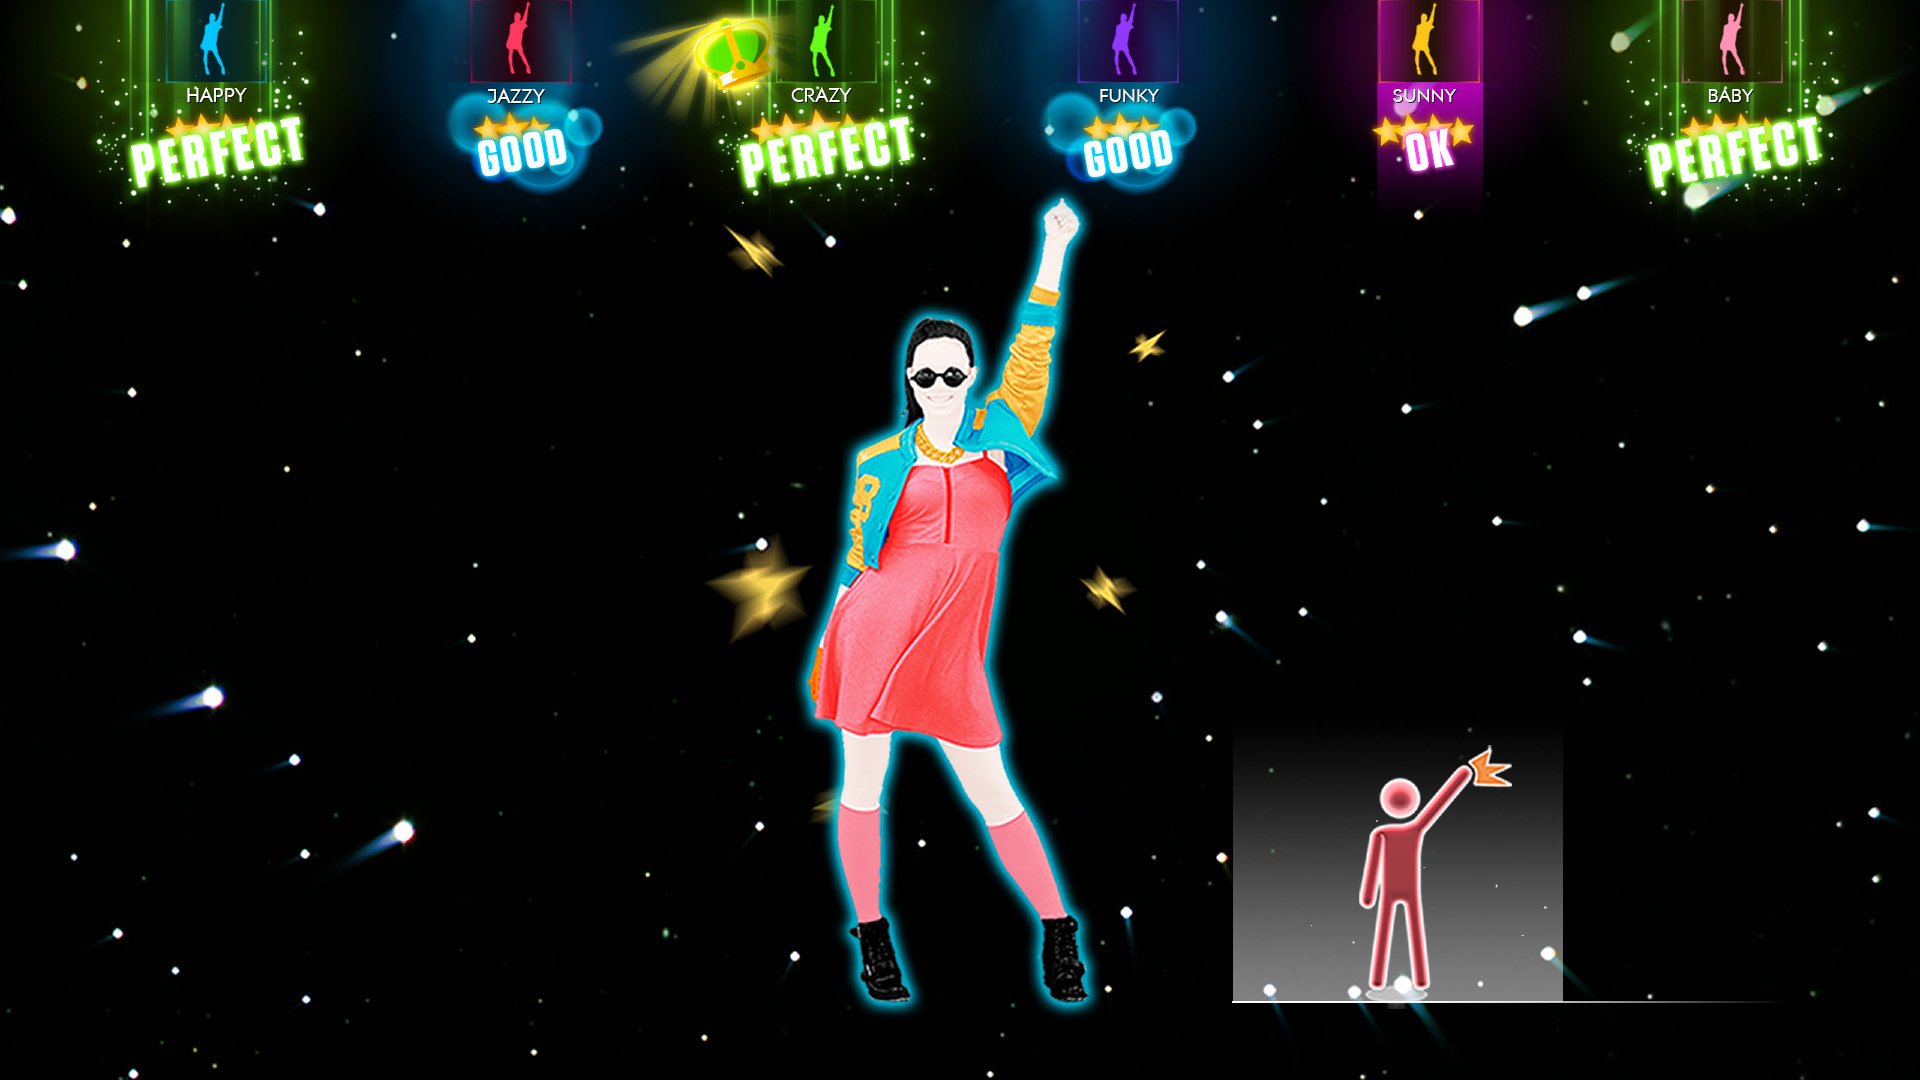 Just Dance 2014 (PS4 / PlayStation 4) Game Profile | News